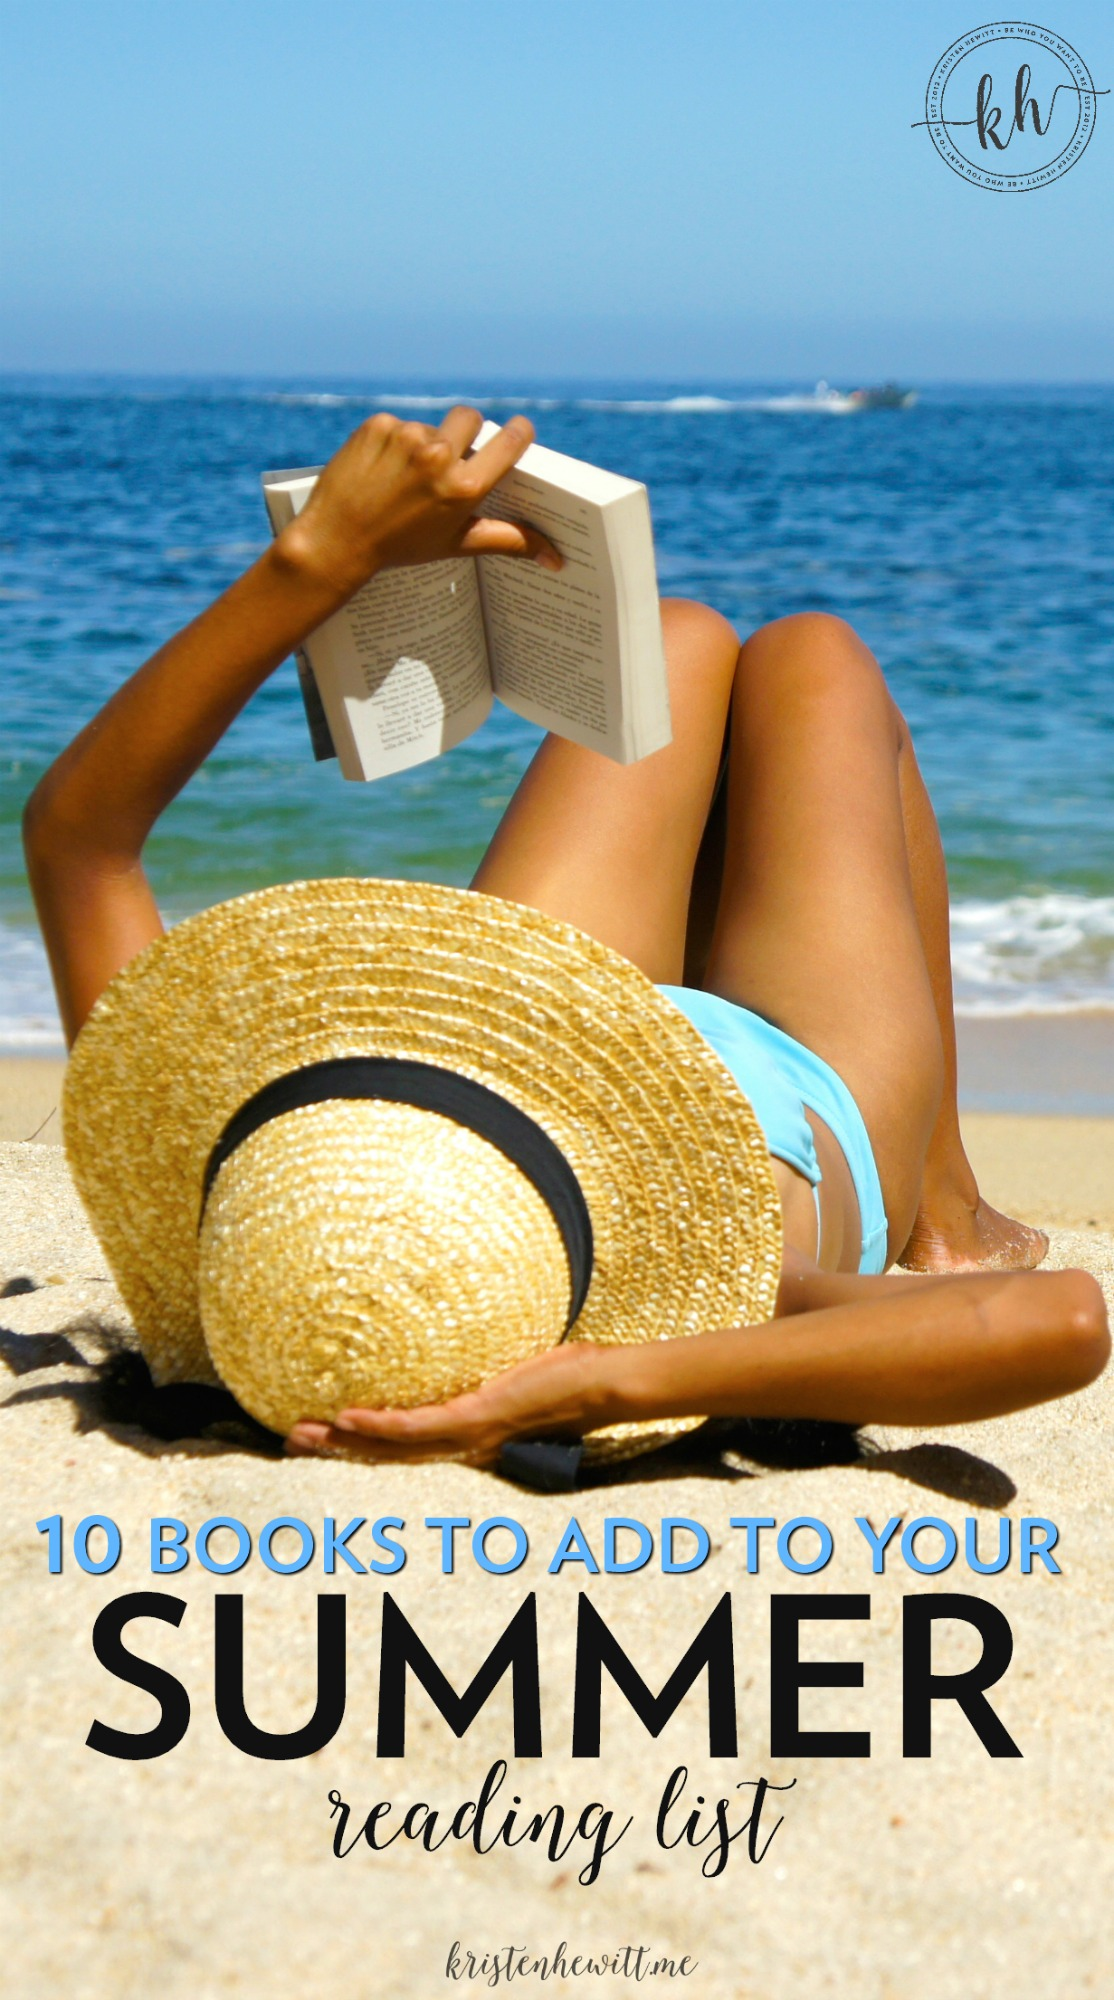 Are you ready for a relaxing summer full of lots of time to read? If so, check out these 10 books to add to your summer reading list!